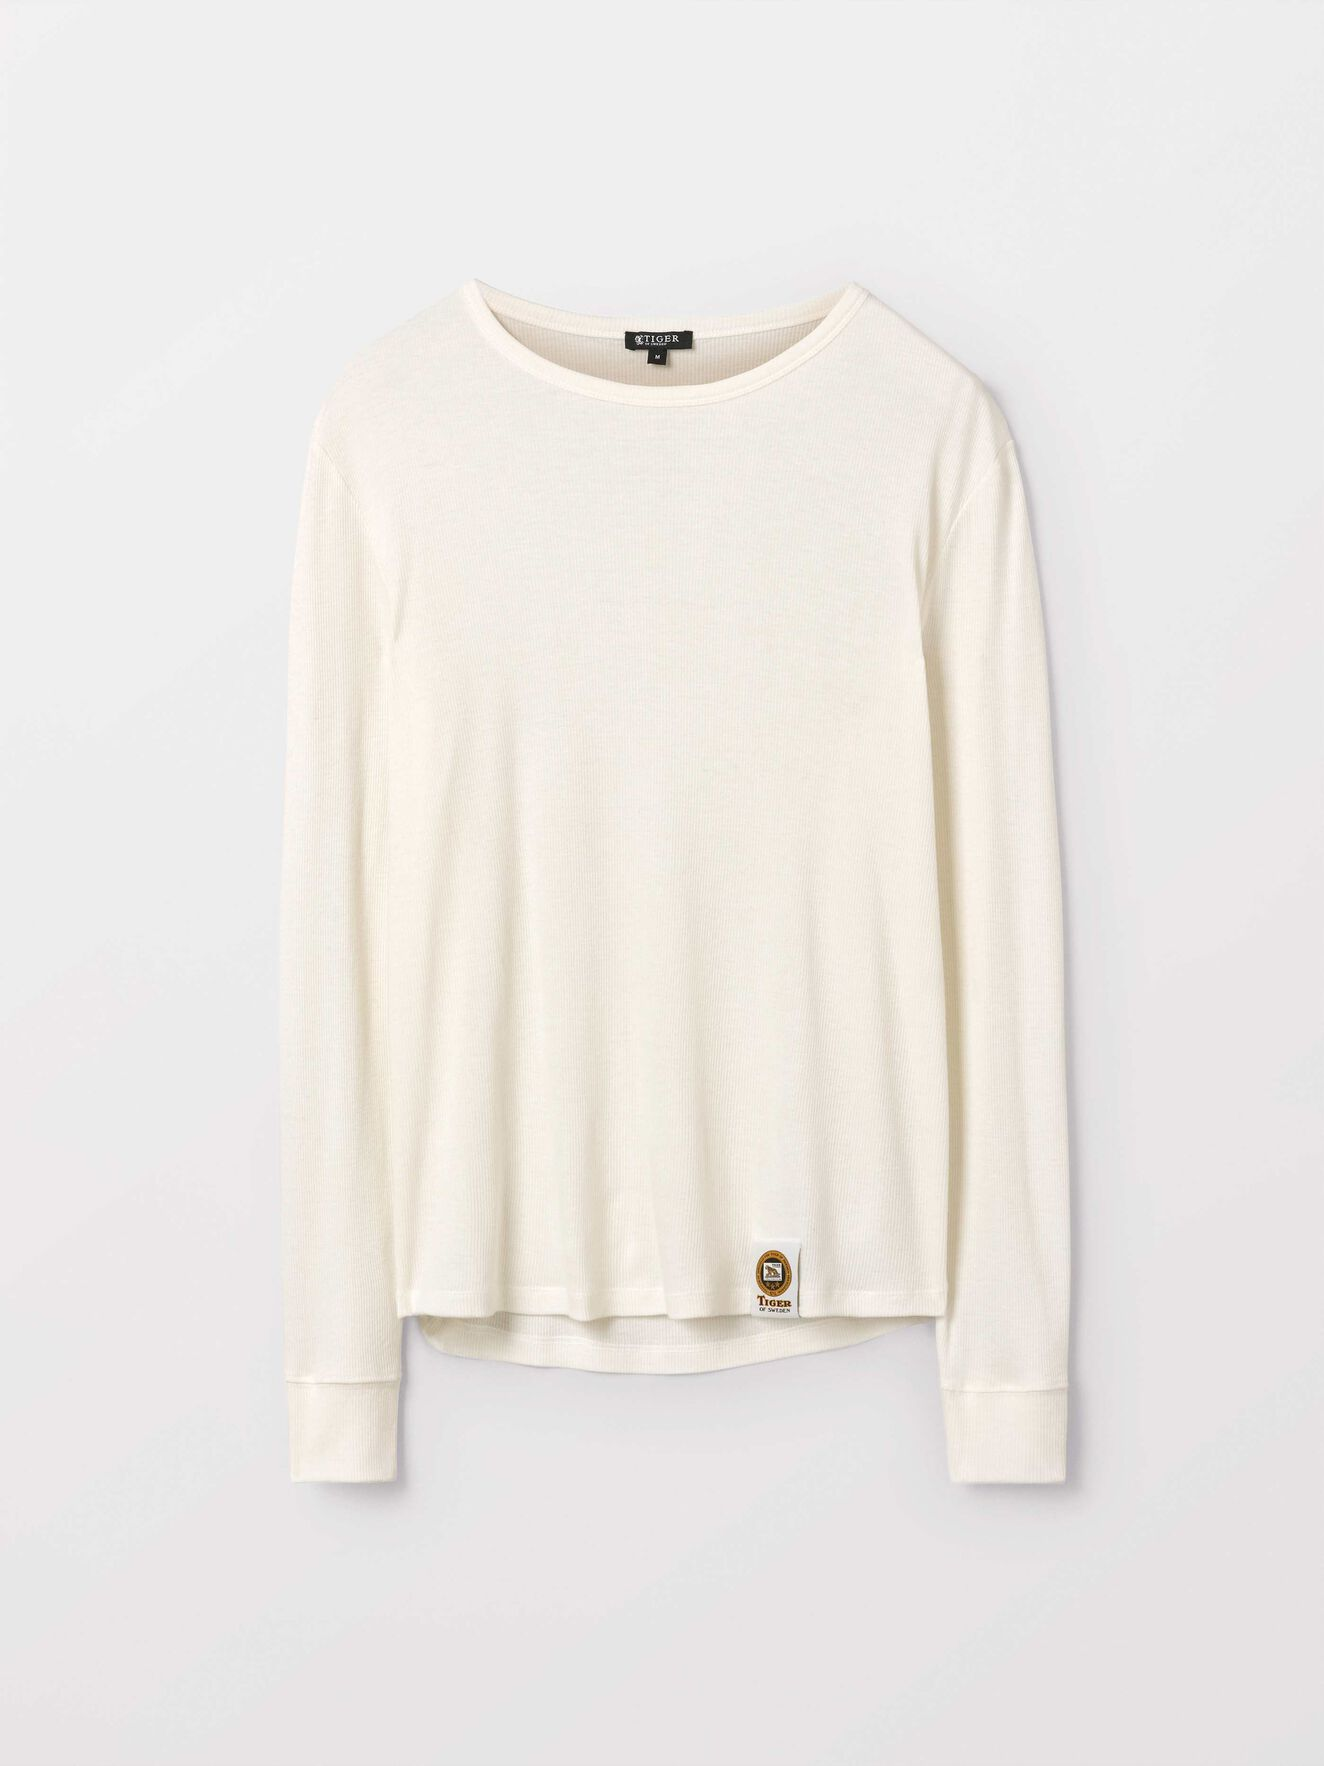 Davidson T-Shirt in Gardenia from Tiger of Sweden